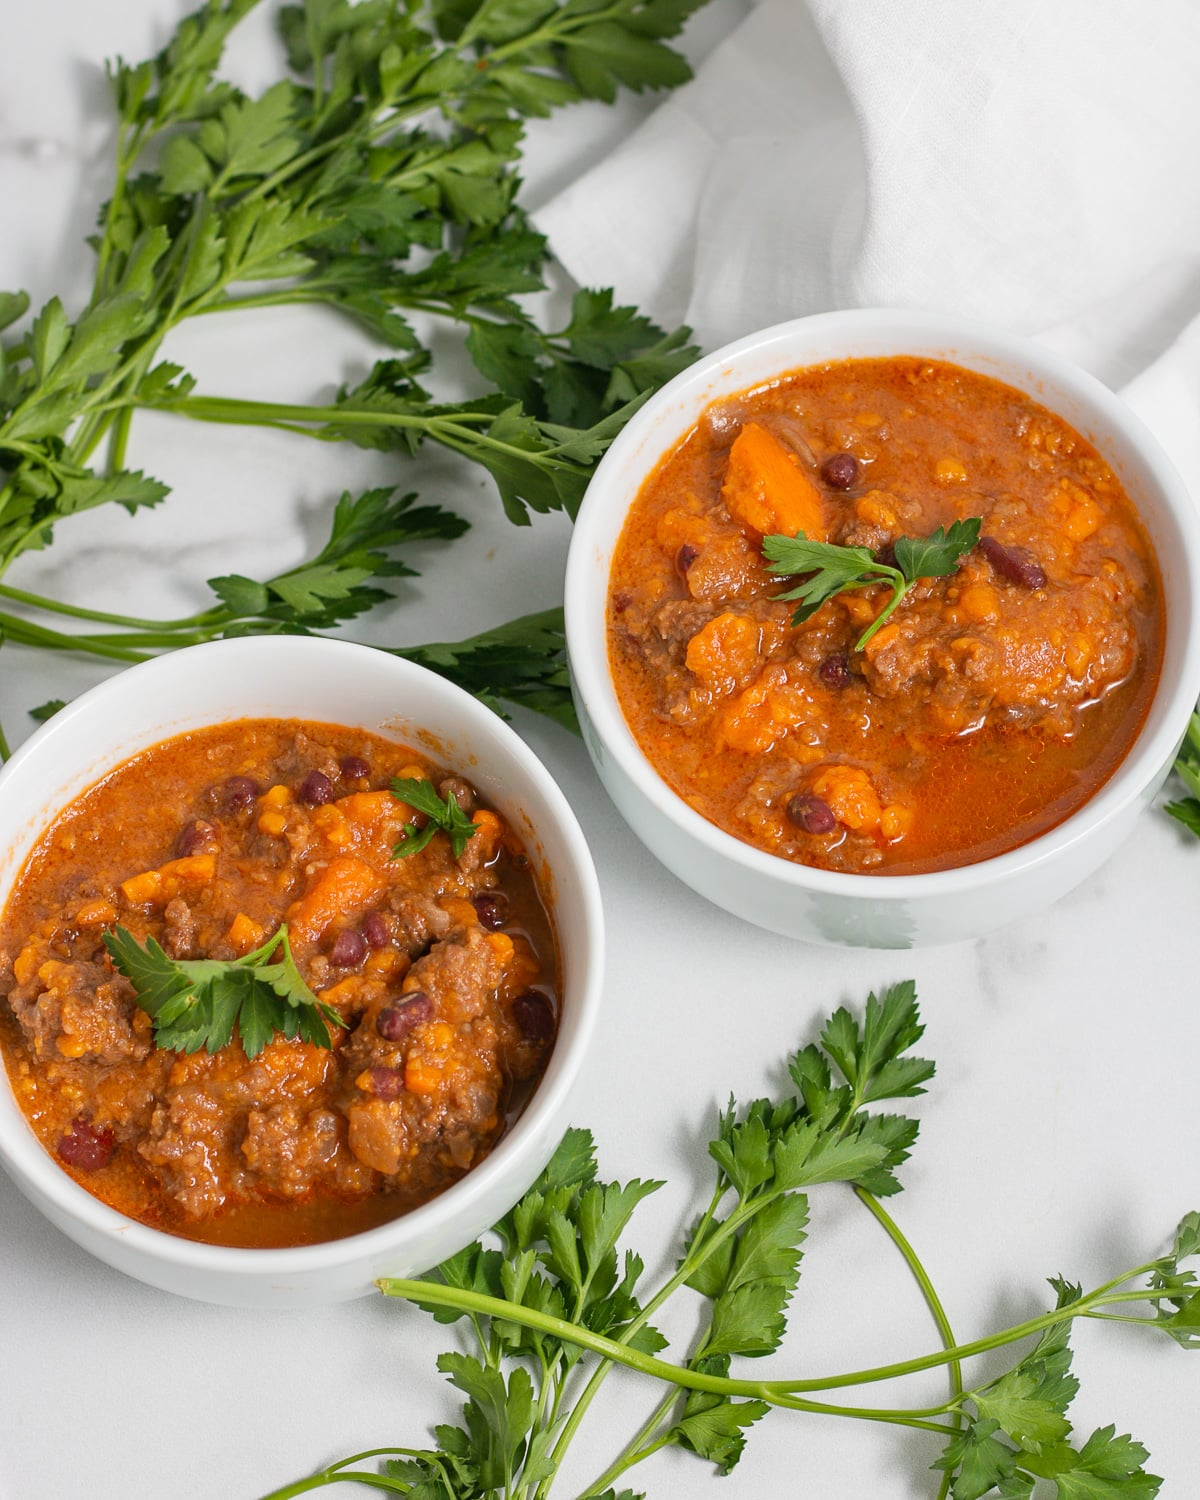 two bowls of chili with parsley on top